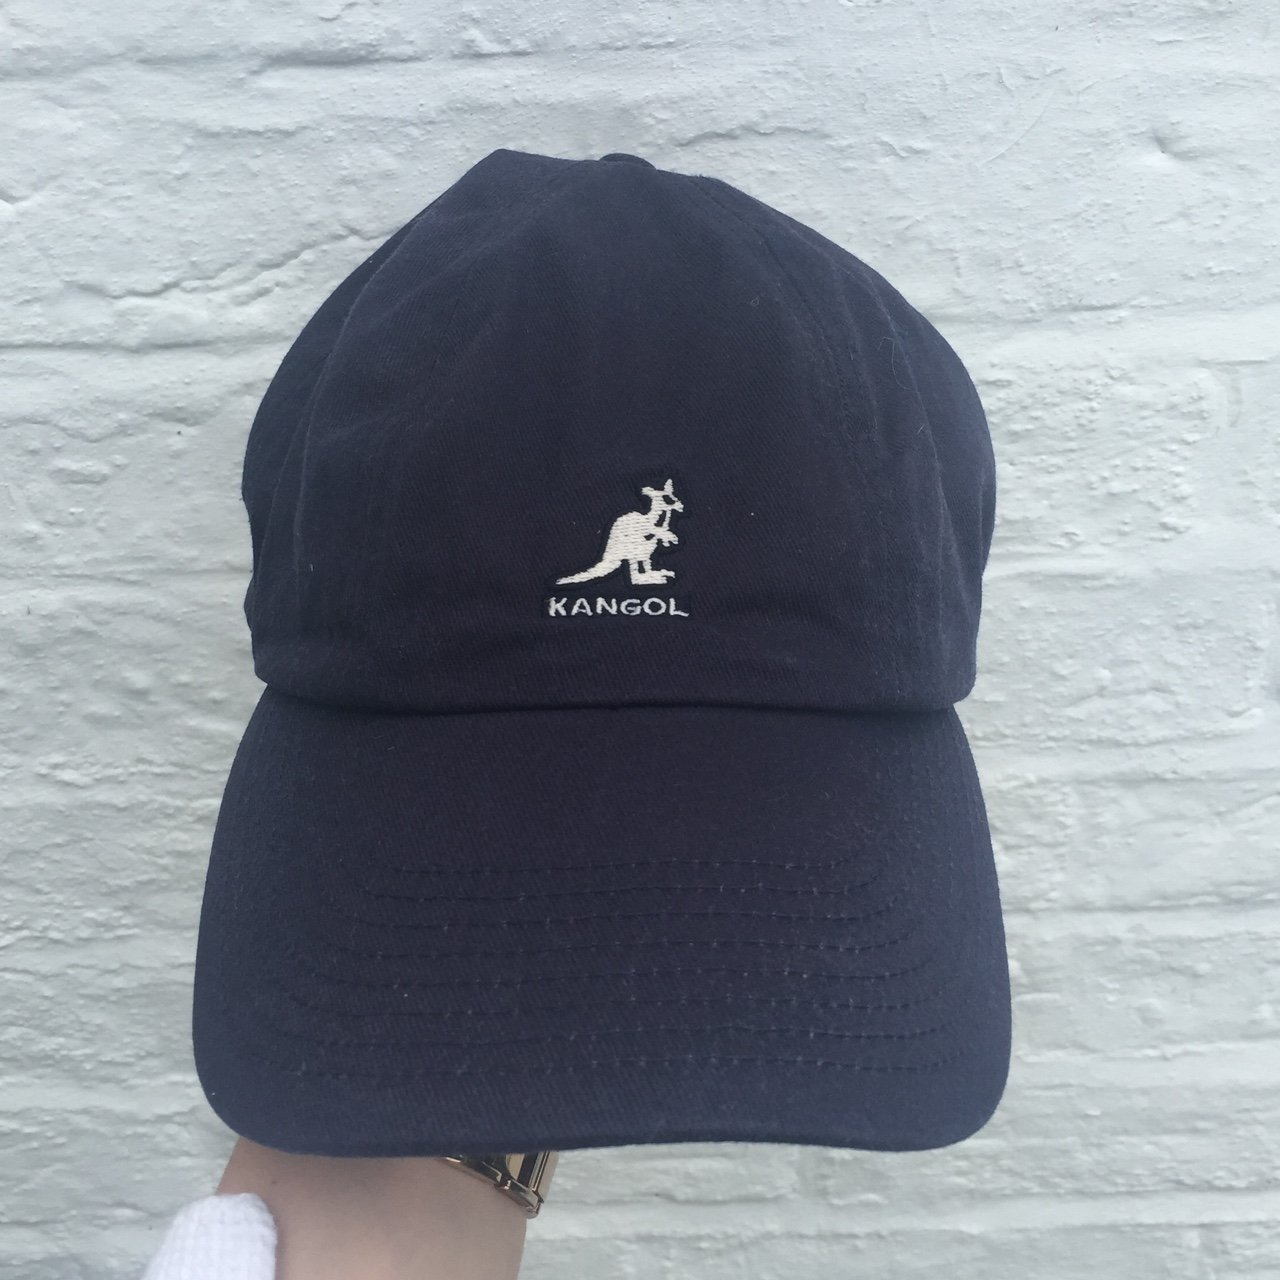 Can suggest Vintage kangol hats